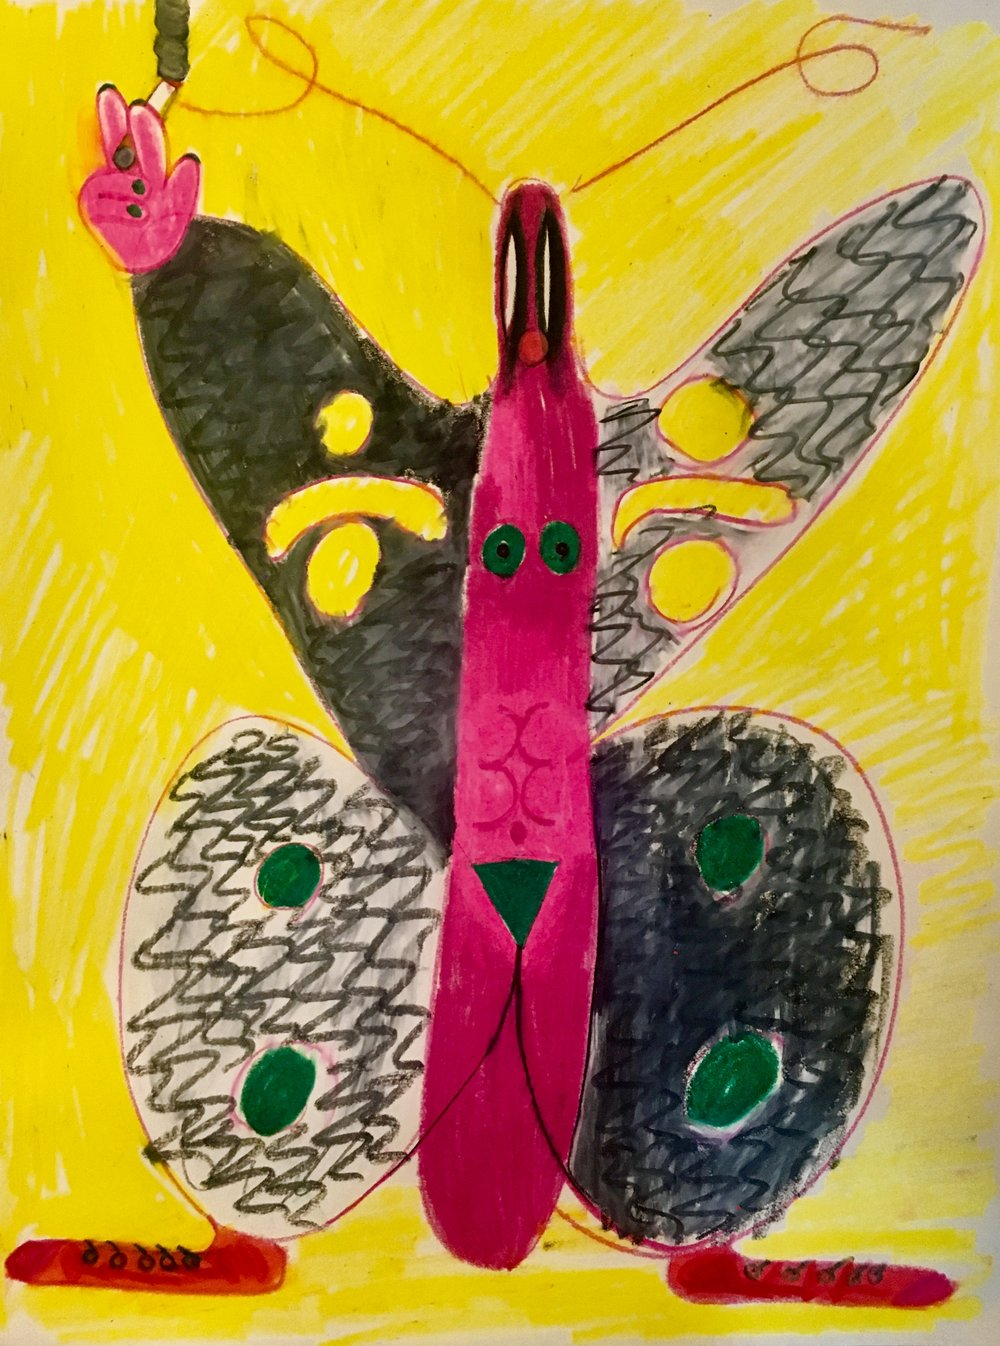 5.Smoking Butterfly, 2018, color pencil on paper, 11 x 14 in.jpg